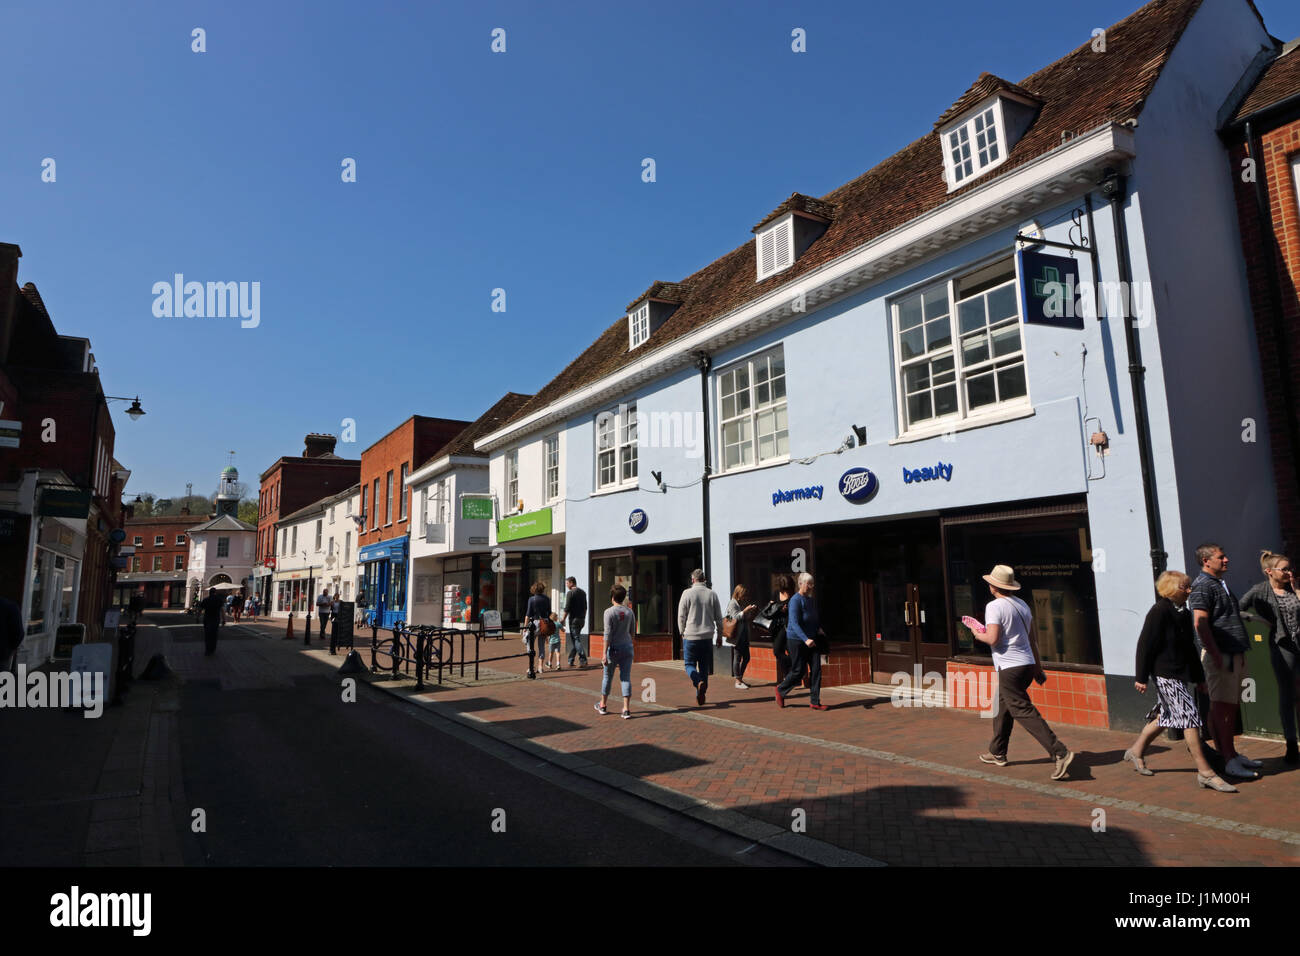 Shops in the High Street, Godalming Surrey England - Stock Image